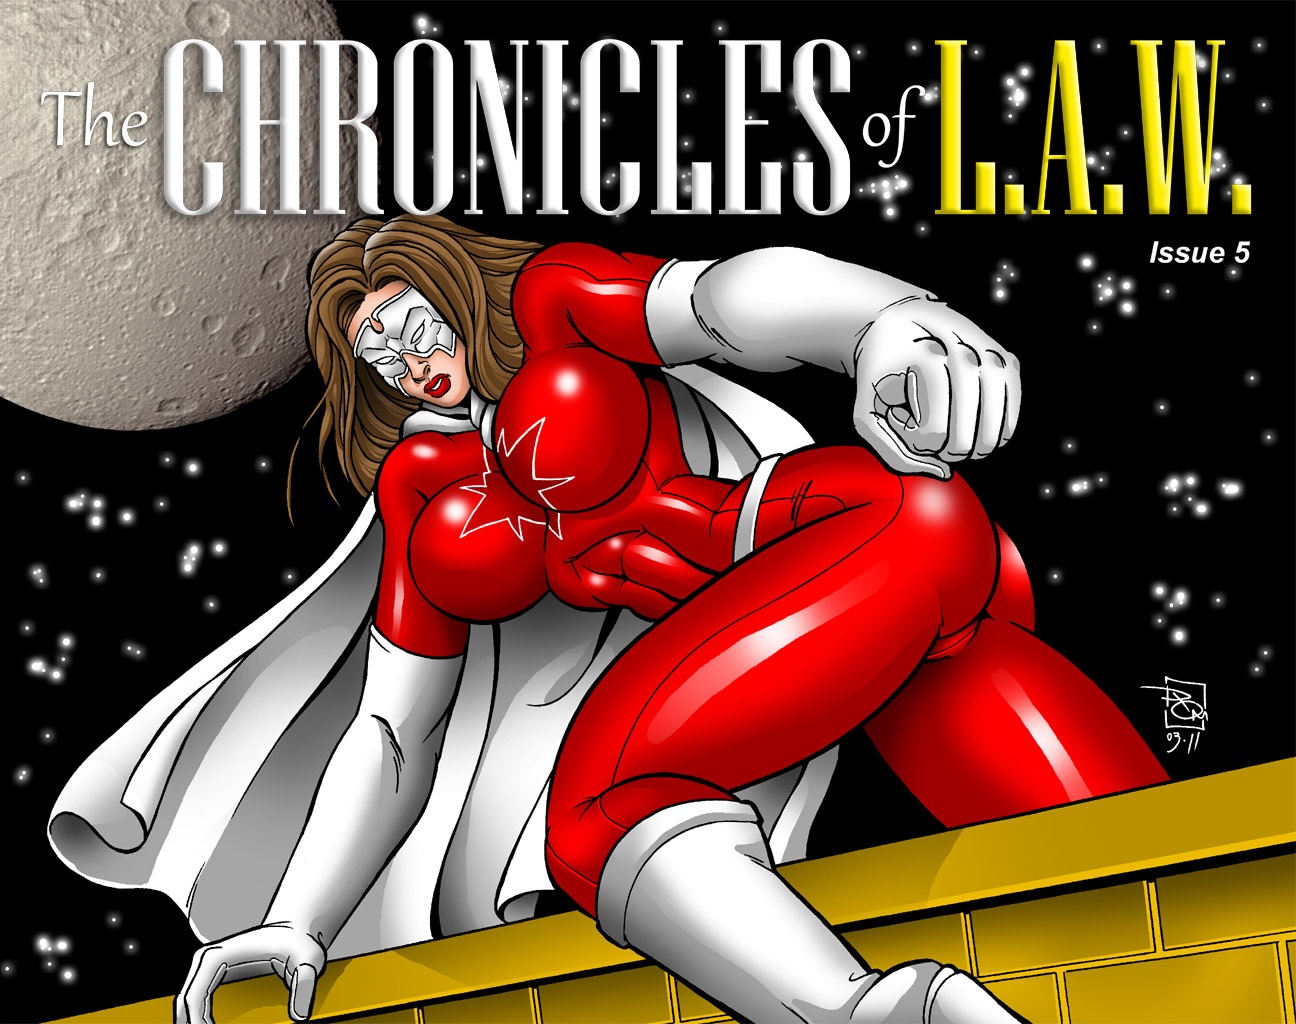 The Chronicles Of L.A.W. 5 & 6